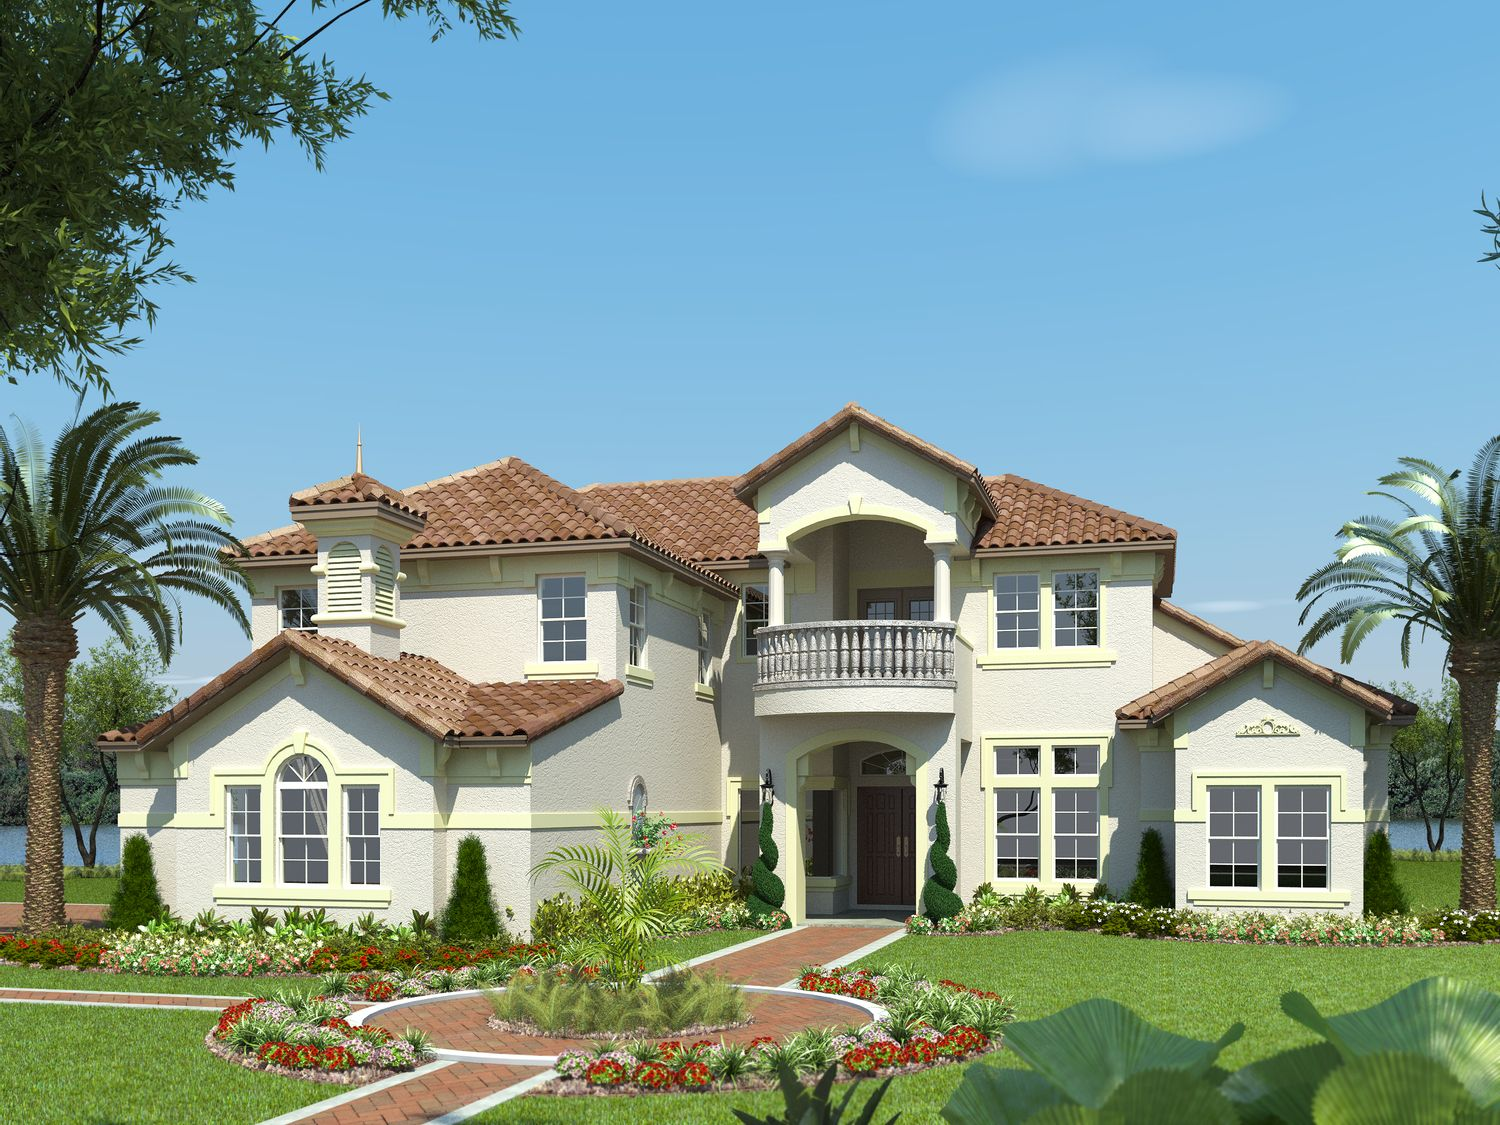 Single Family for Sale at Heritage Green - The Deauville 2310 Pinehurst Ct Davenport, Florida 33837 United States